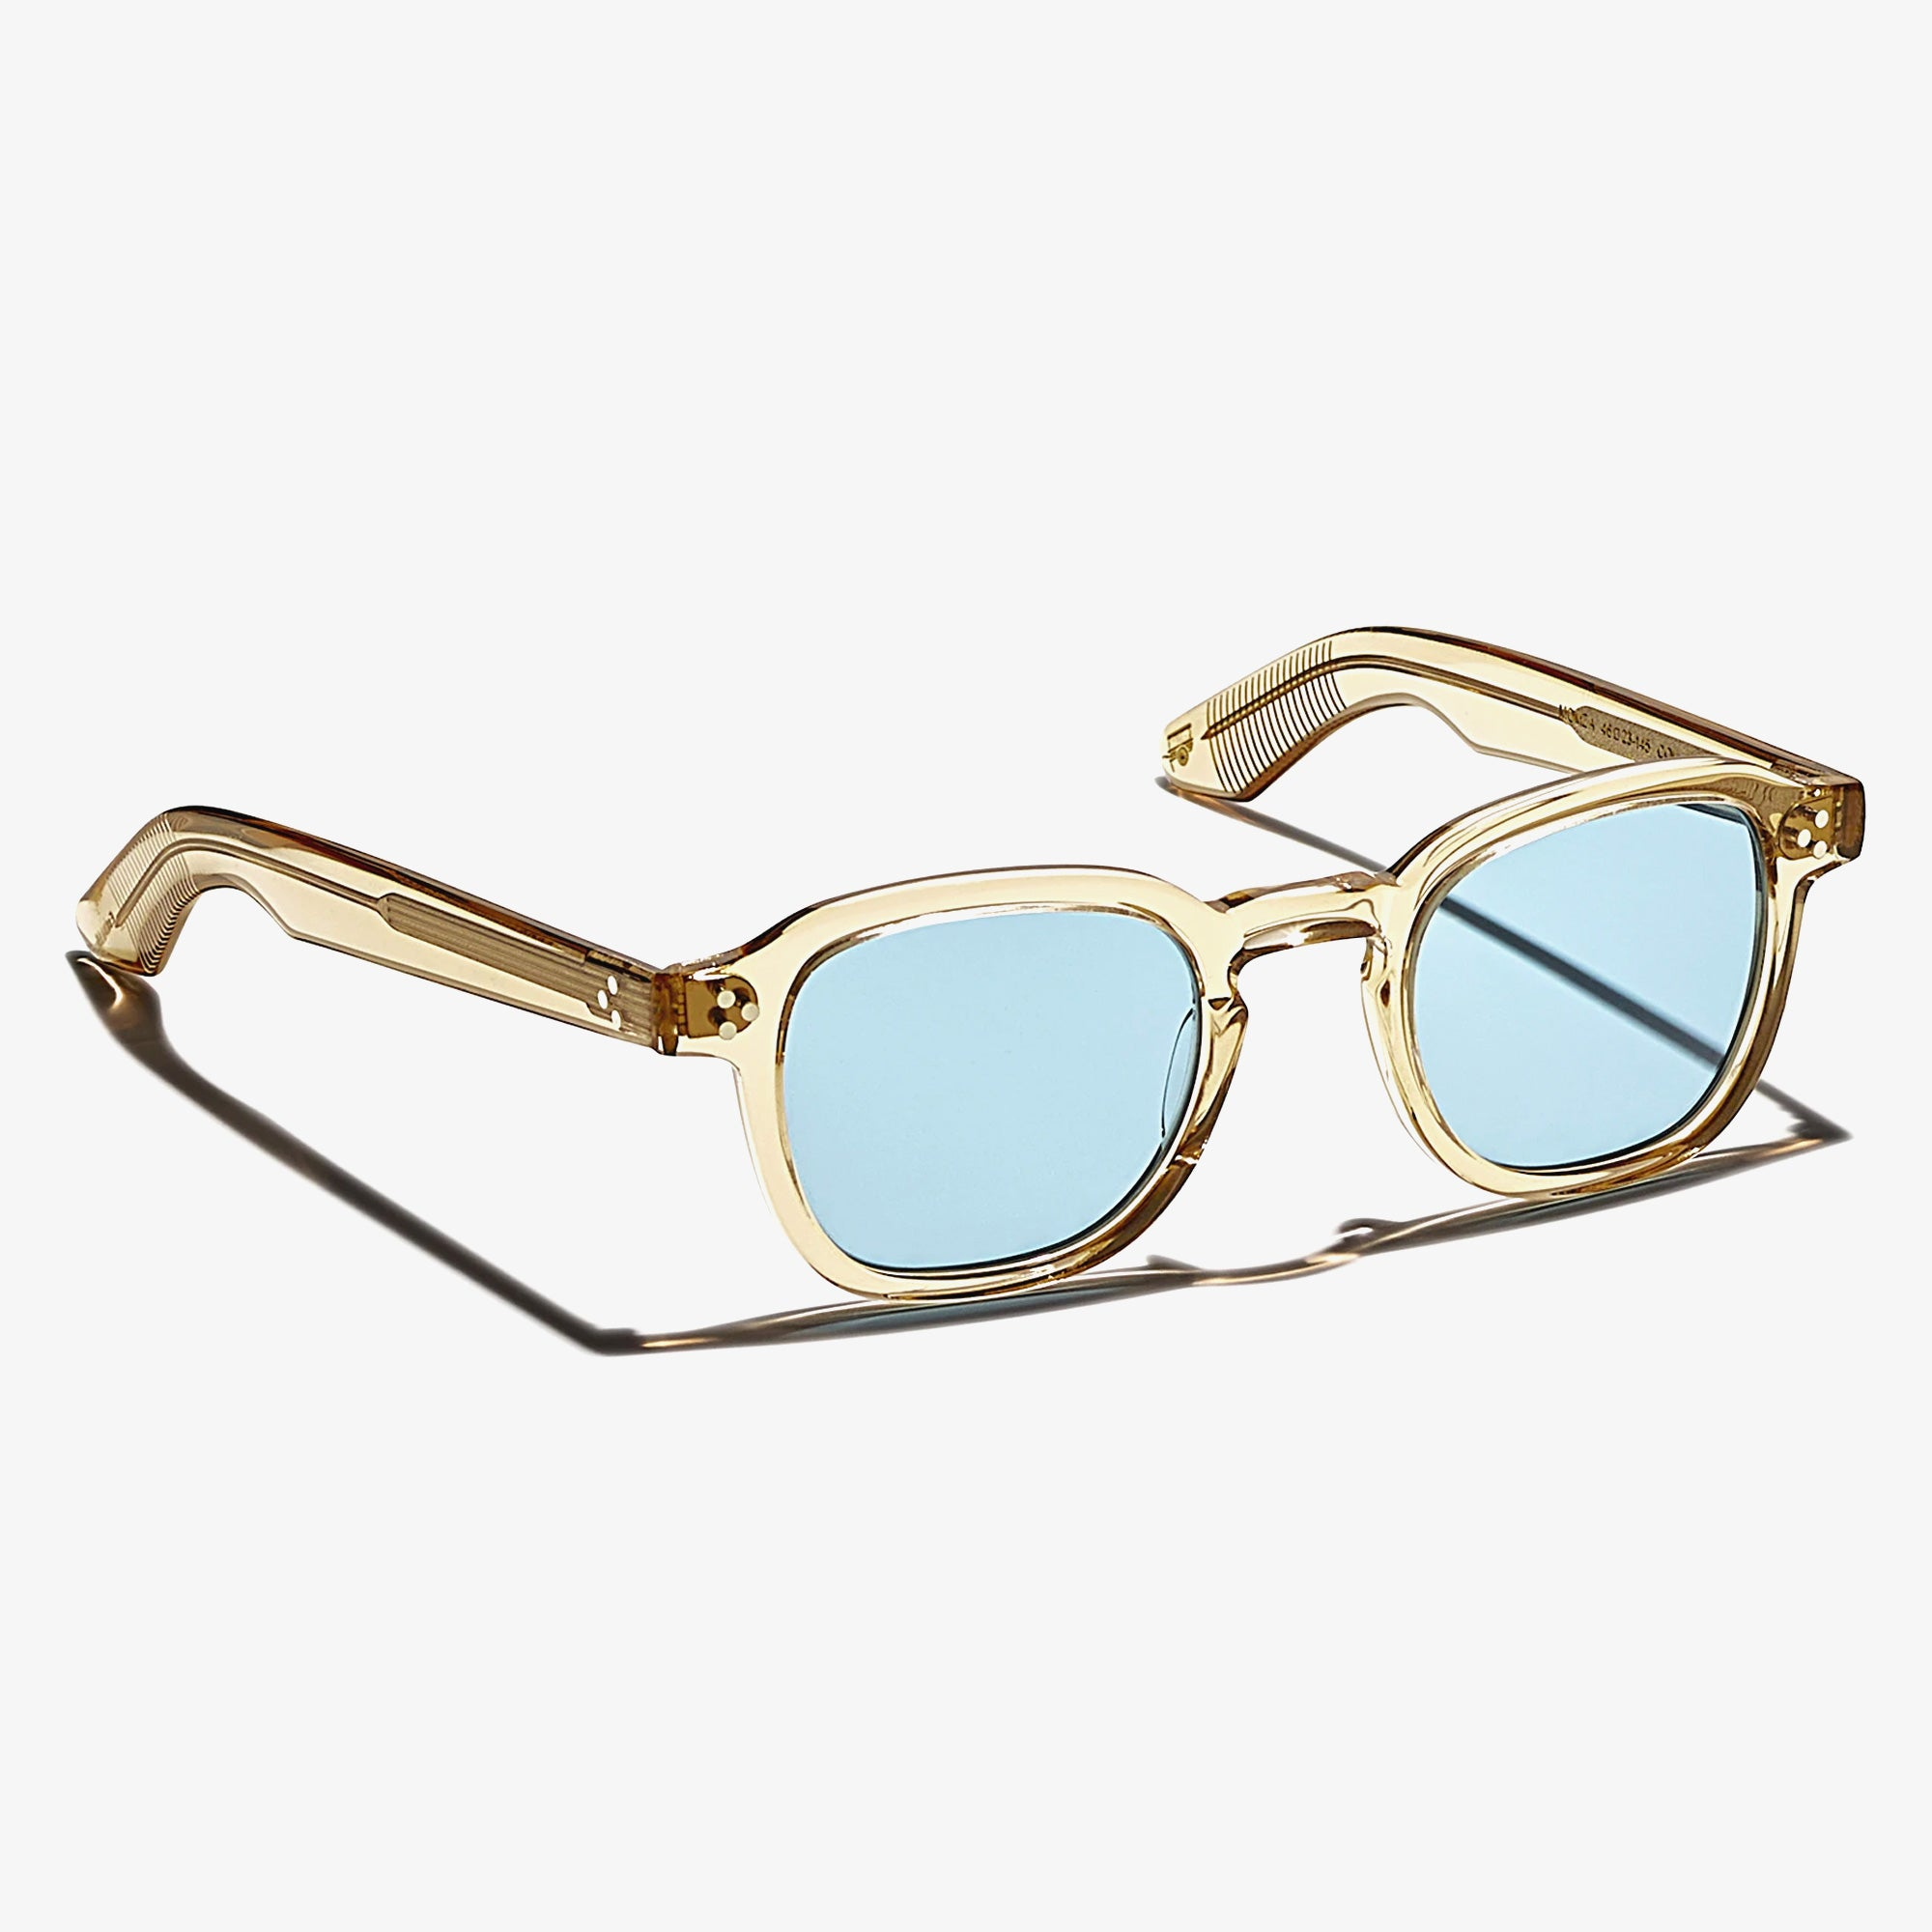 Moscot Momza Sunglasses - Cinnamon / Blue 2